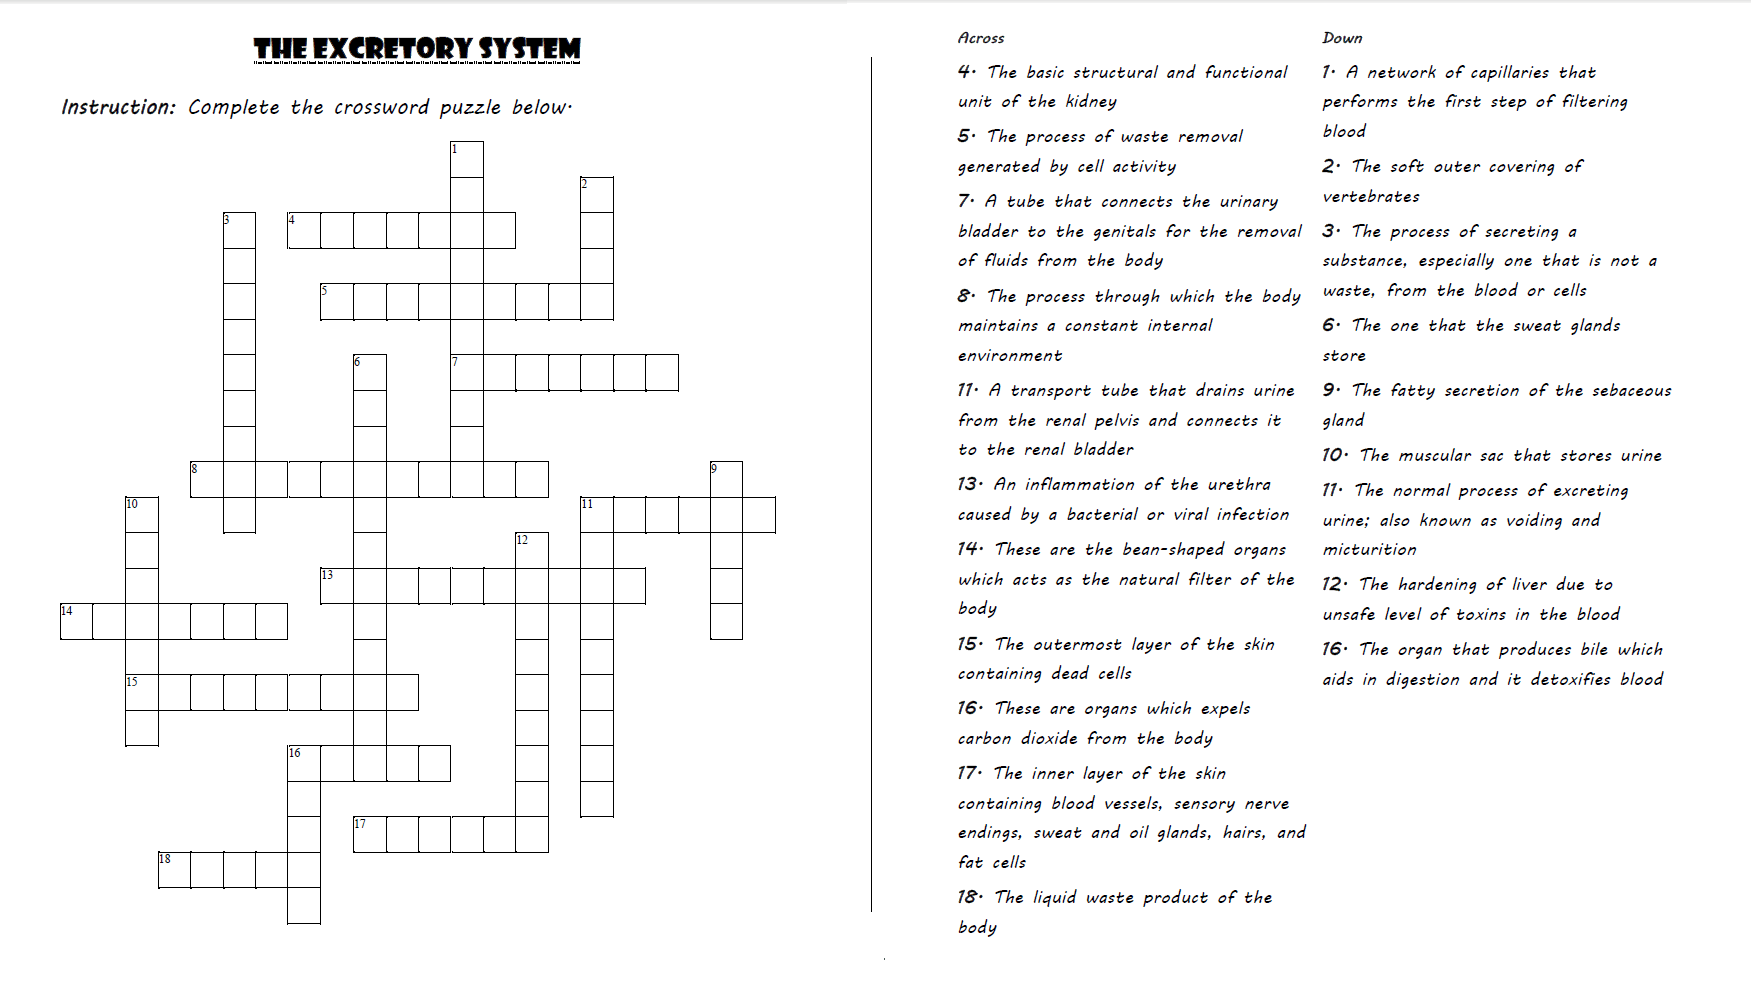 The Excretory System Crossword Puzzle